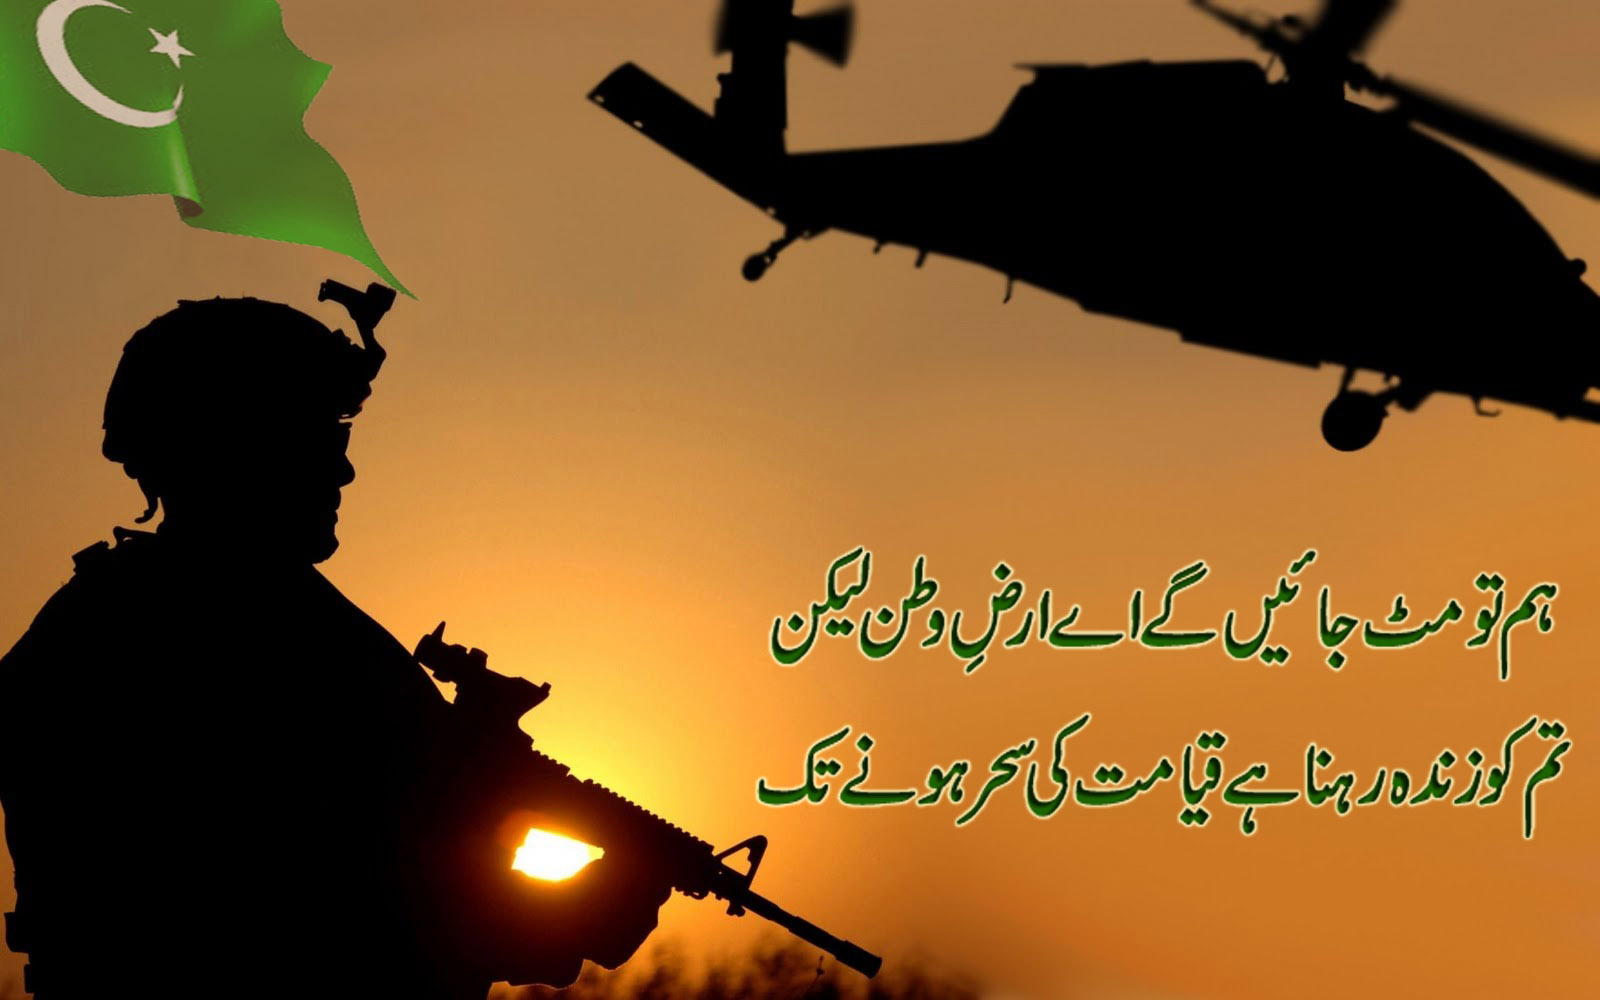 Army Love Wallpaper Hd : Pak army hd wallpapers moonlightforall.com